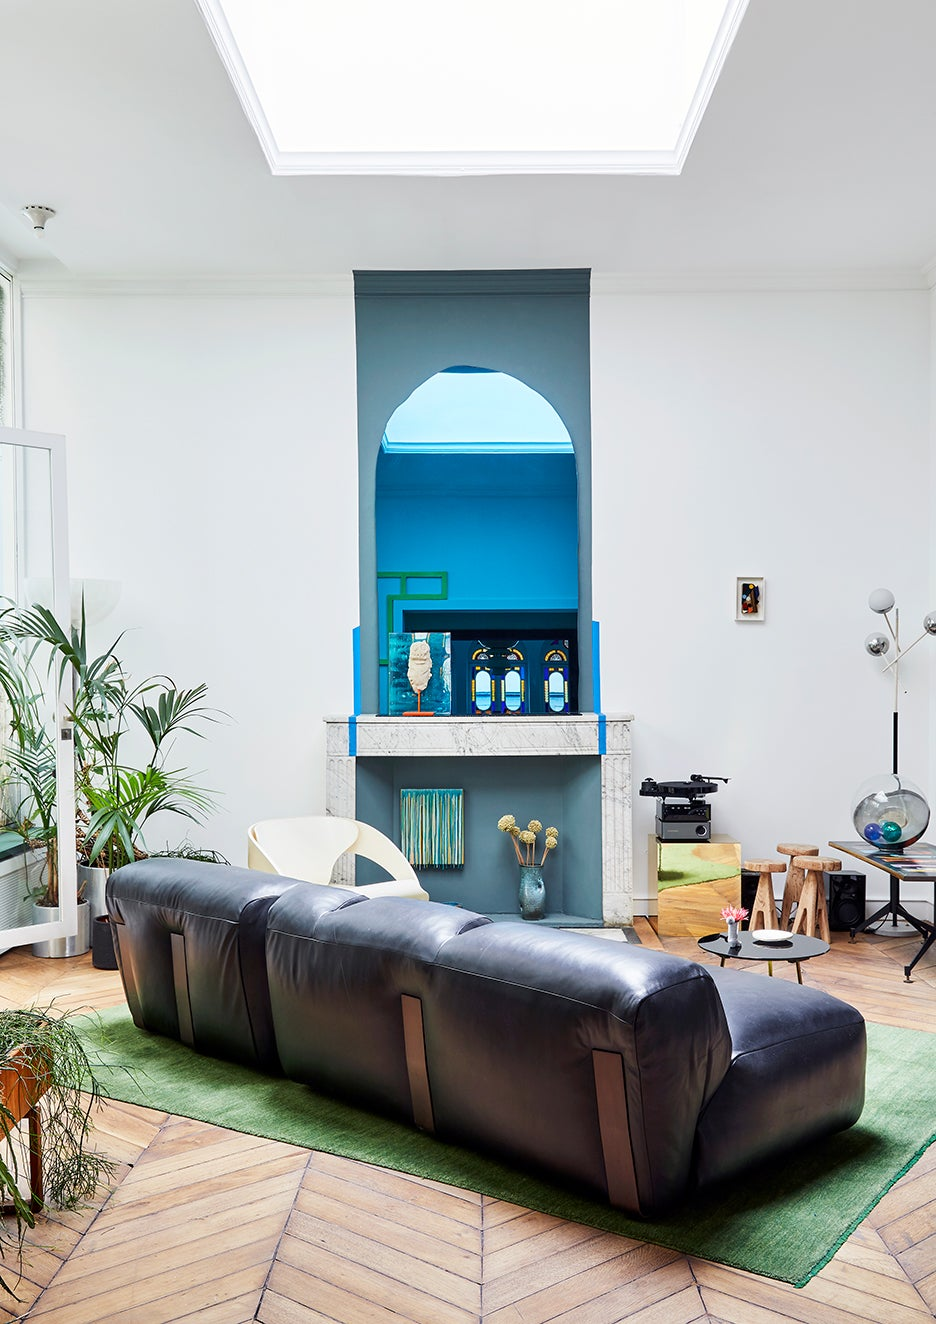 Black leather sofa placed diagonally above a green rug